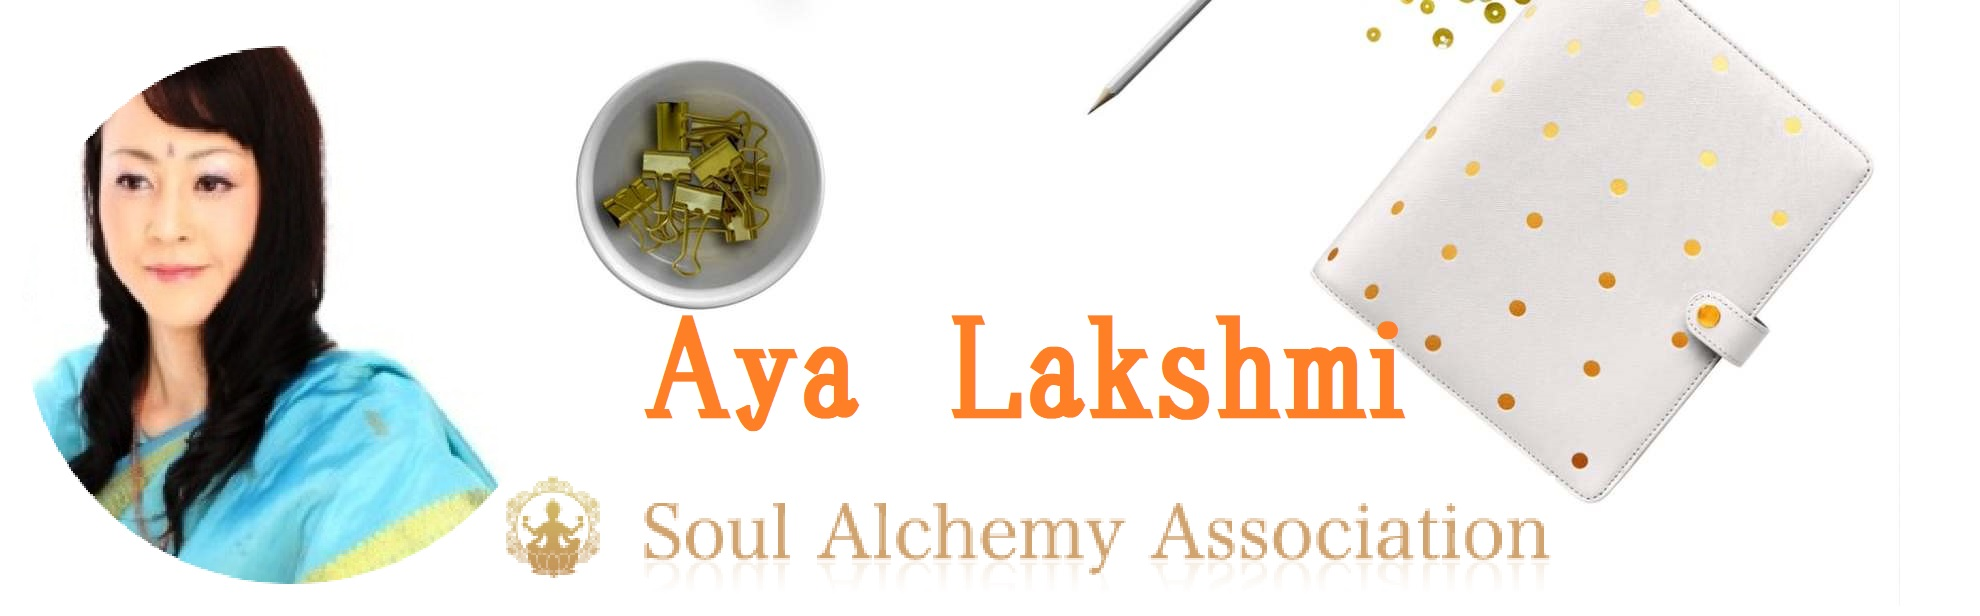 Soul Alchemy Association Aya Lakshmi